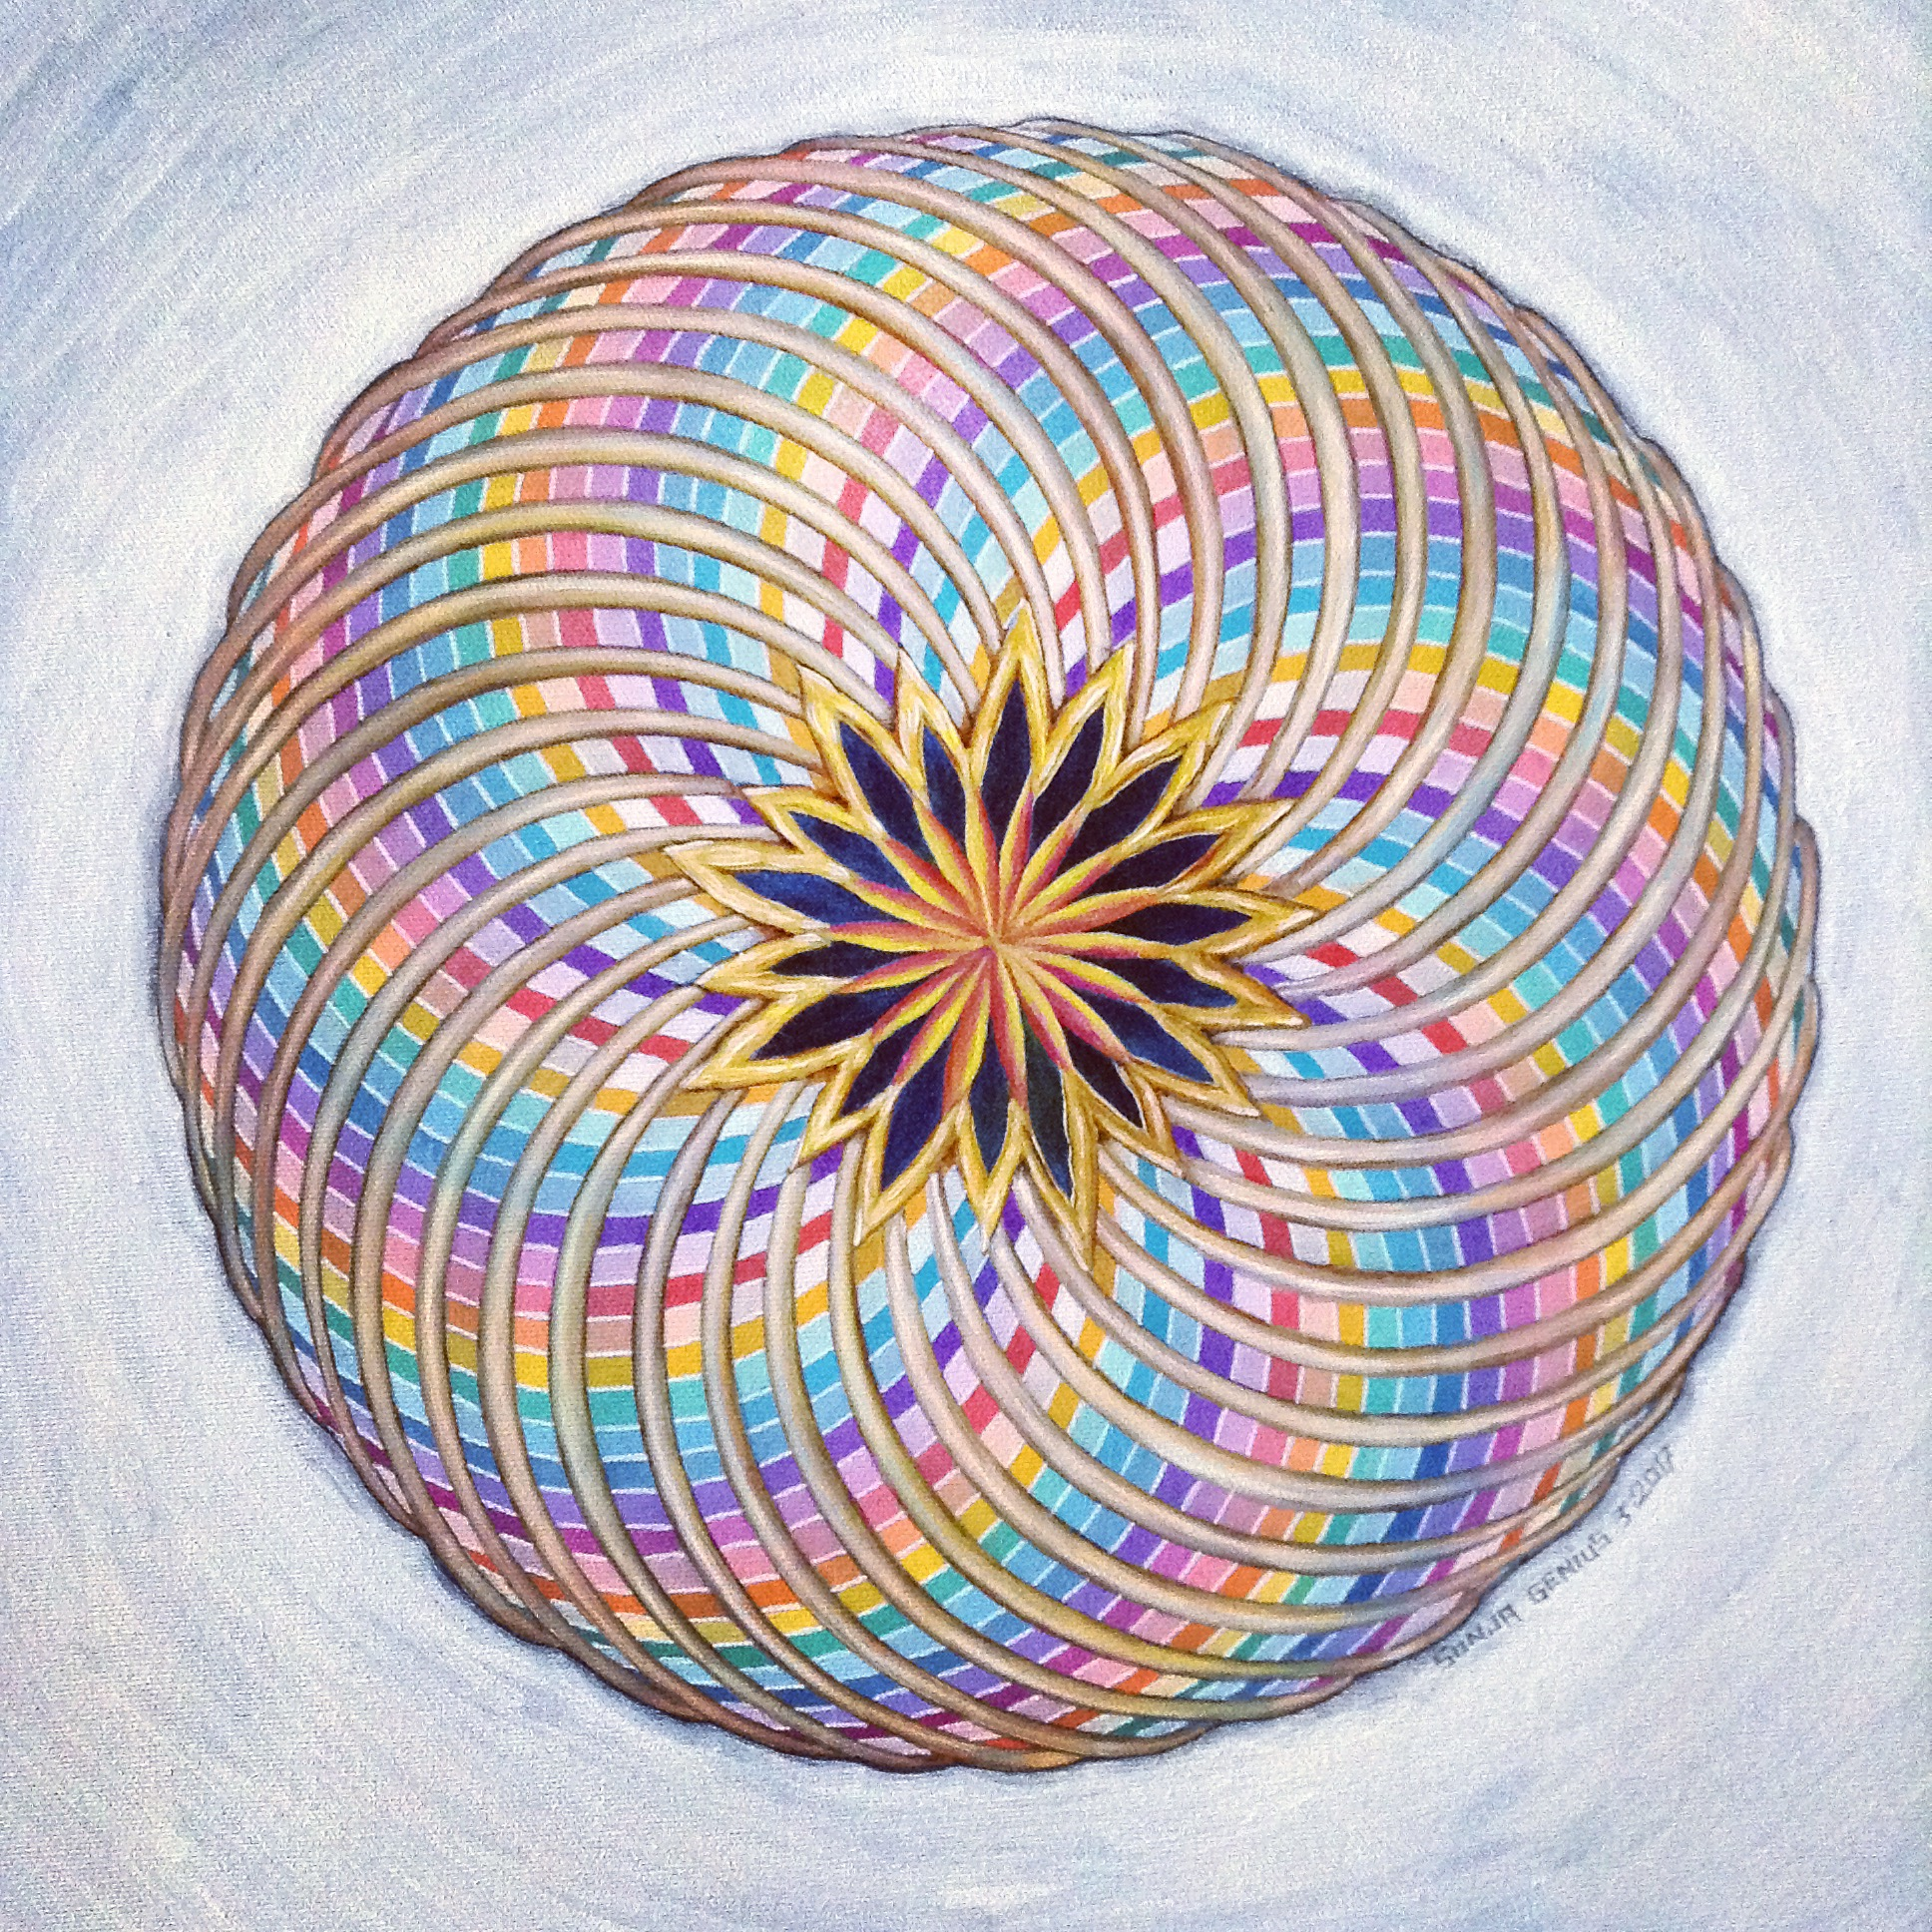 Rainbow Torus, oil on canvas 16x16, March 2017 (4)